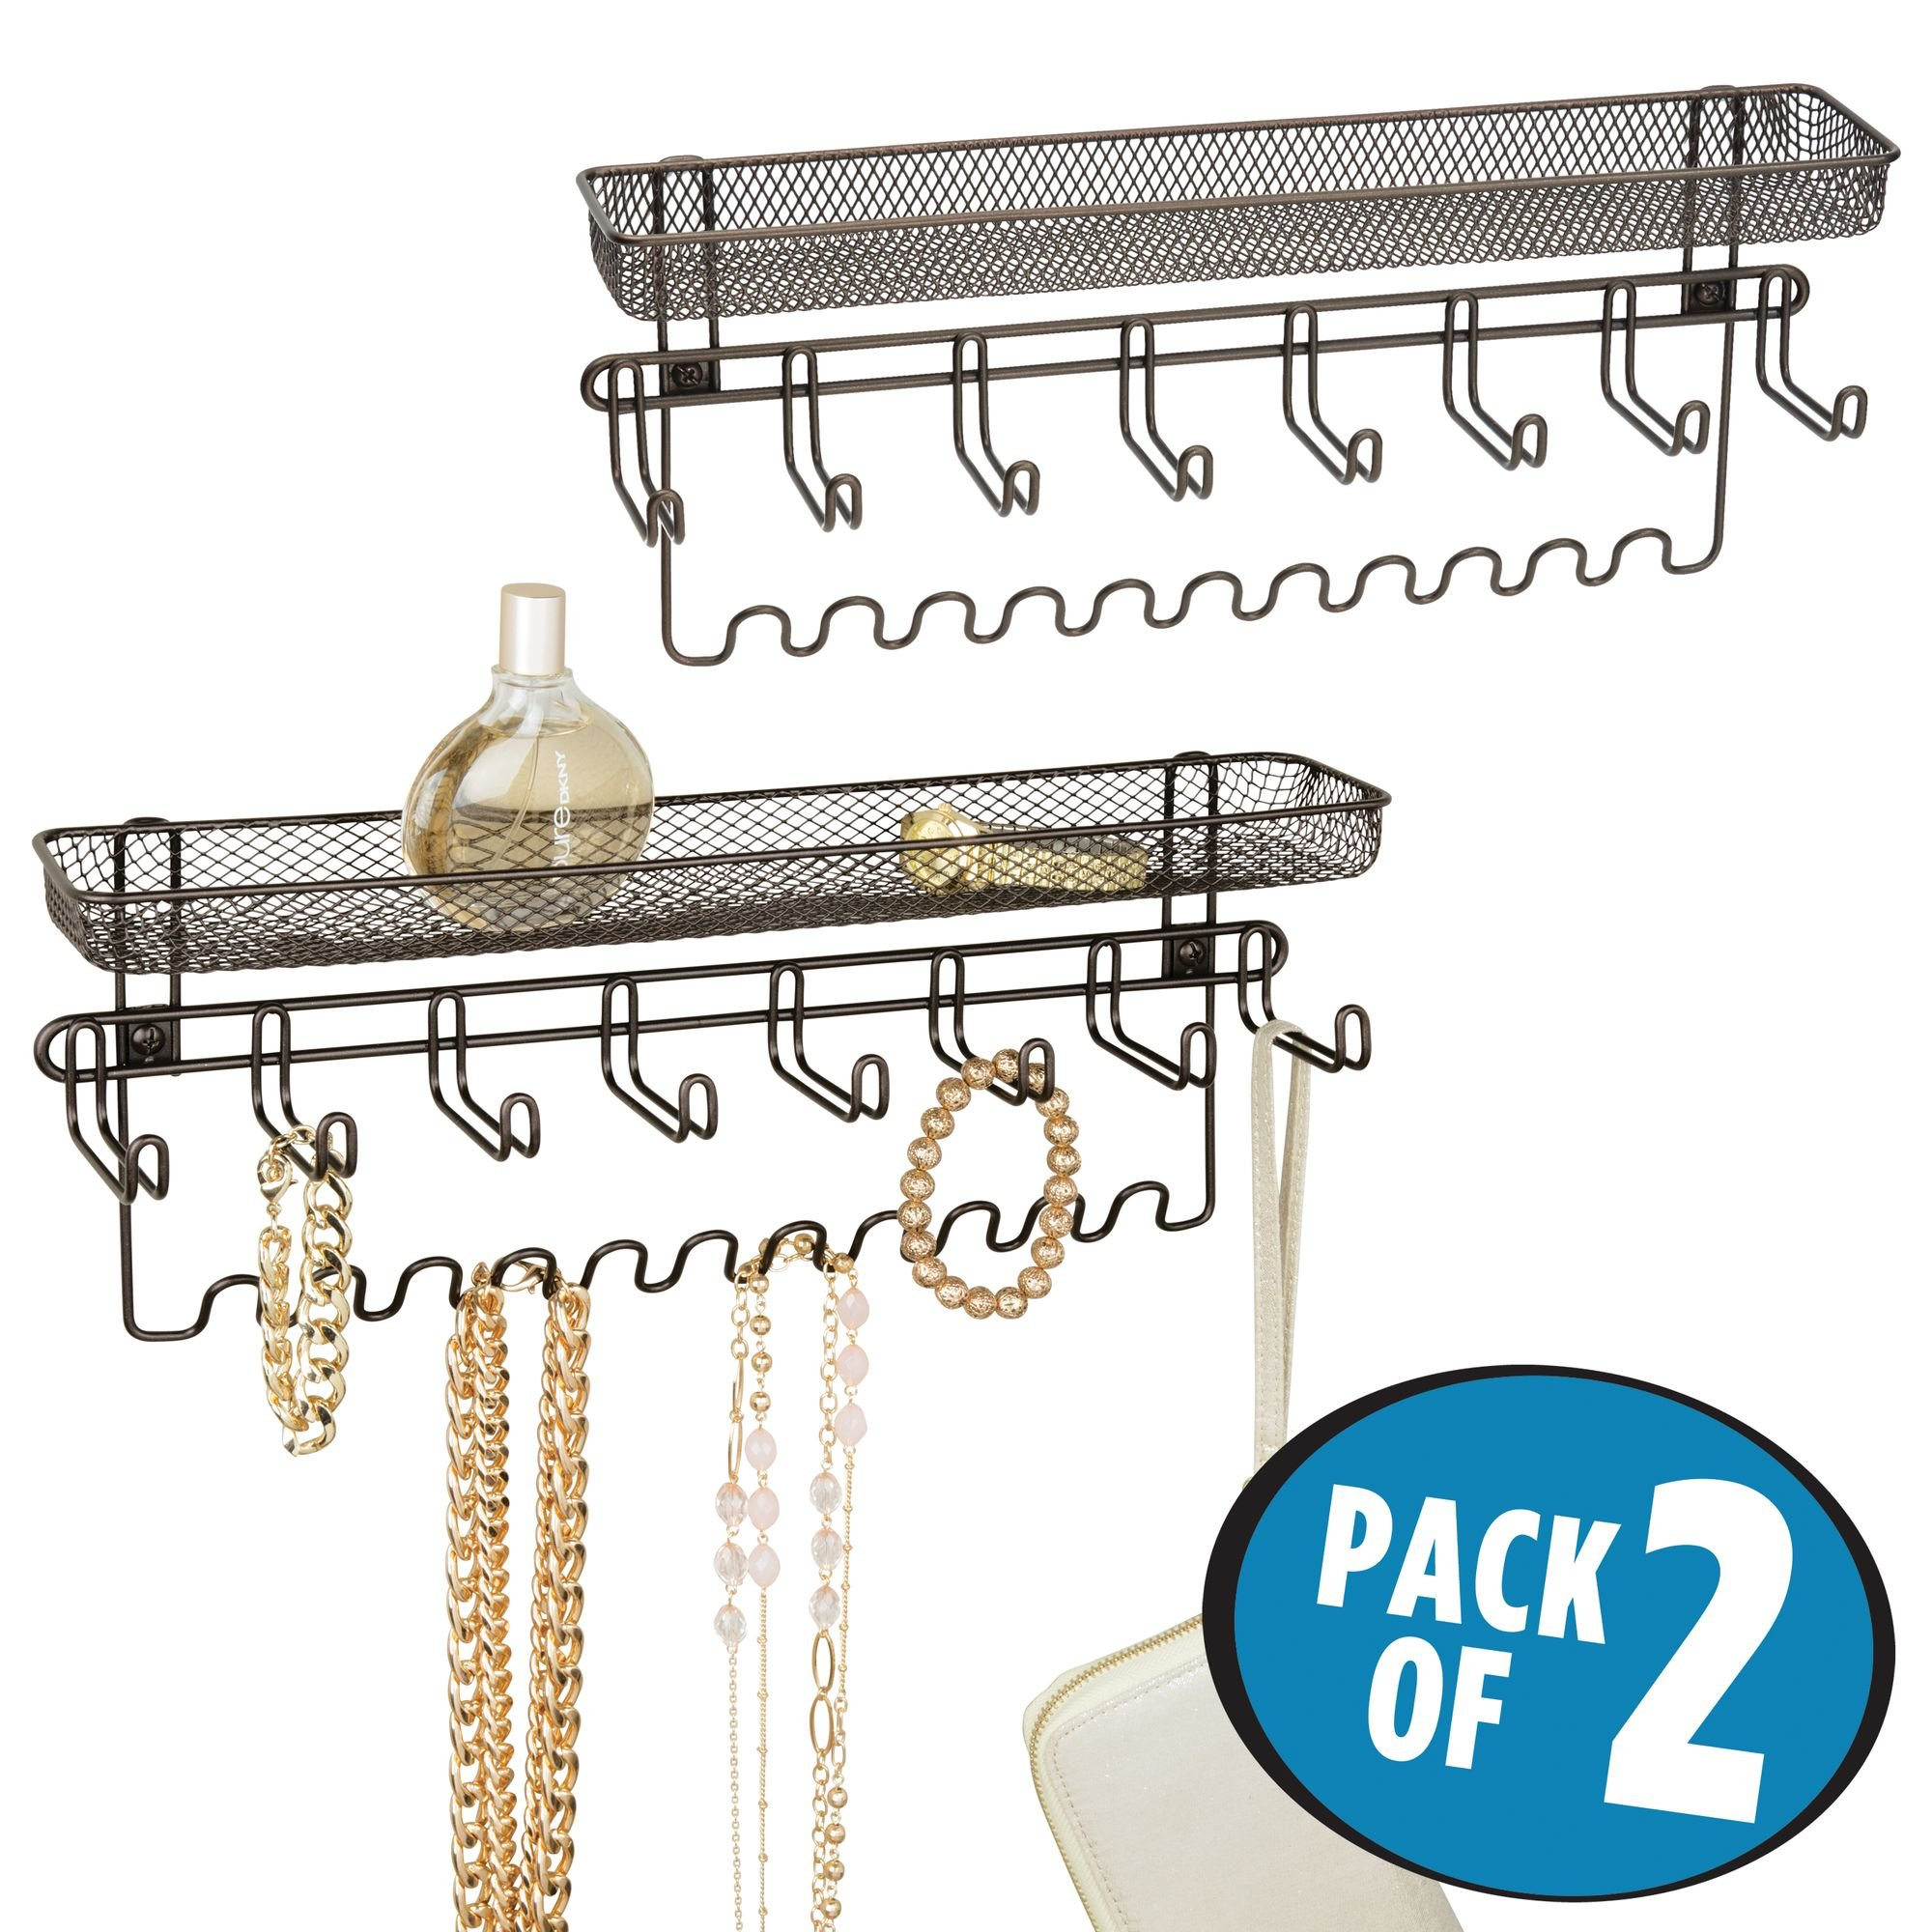 mDesign Closet Wall Mount Jewelry Accessory Organizer for Storage of Necklaces, Bracelets, Rings, Earrings, Sunglasses, Wallets – 8 Large Hooks/11 Small Hooks/1 Basket, Pack of 2, Bronze